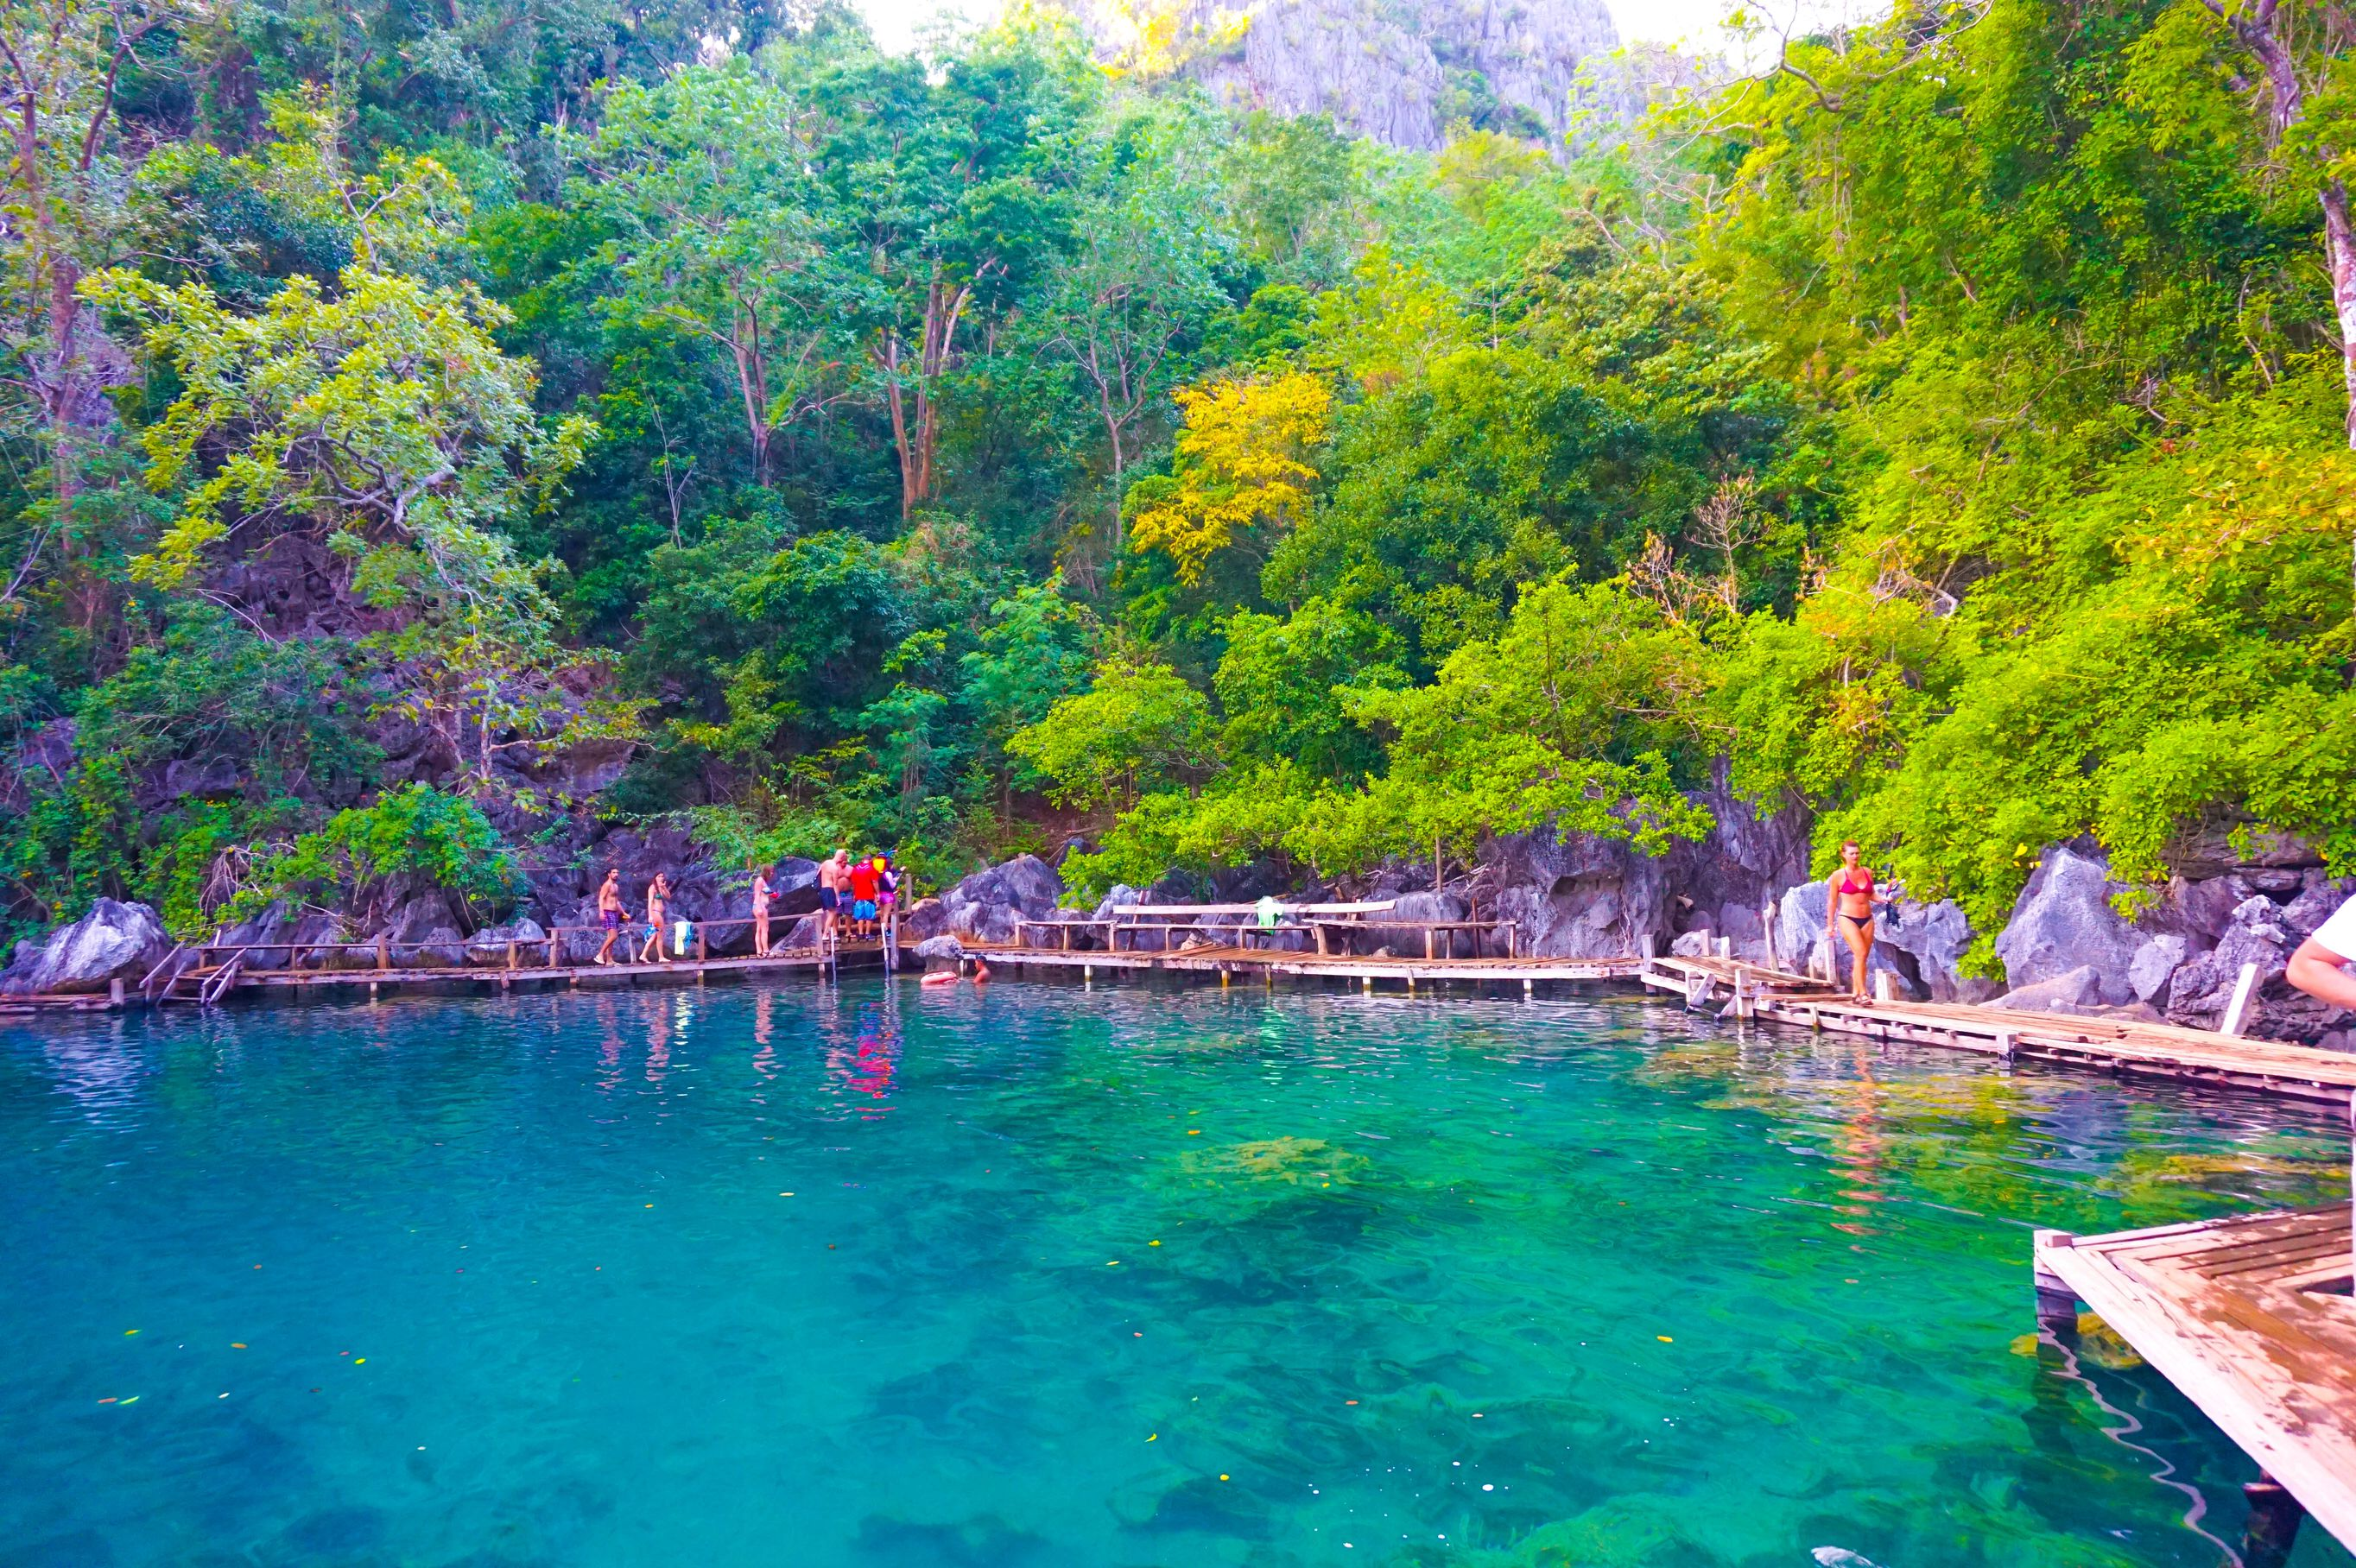 Crystalline lake surrounded by limestone cliffs overhung with trees and other vegetation in Coron, one of the most amazing places to visit in the Philippines